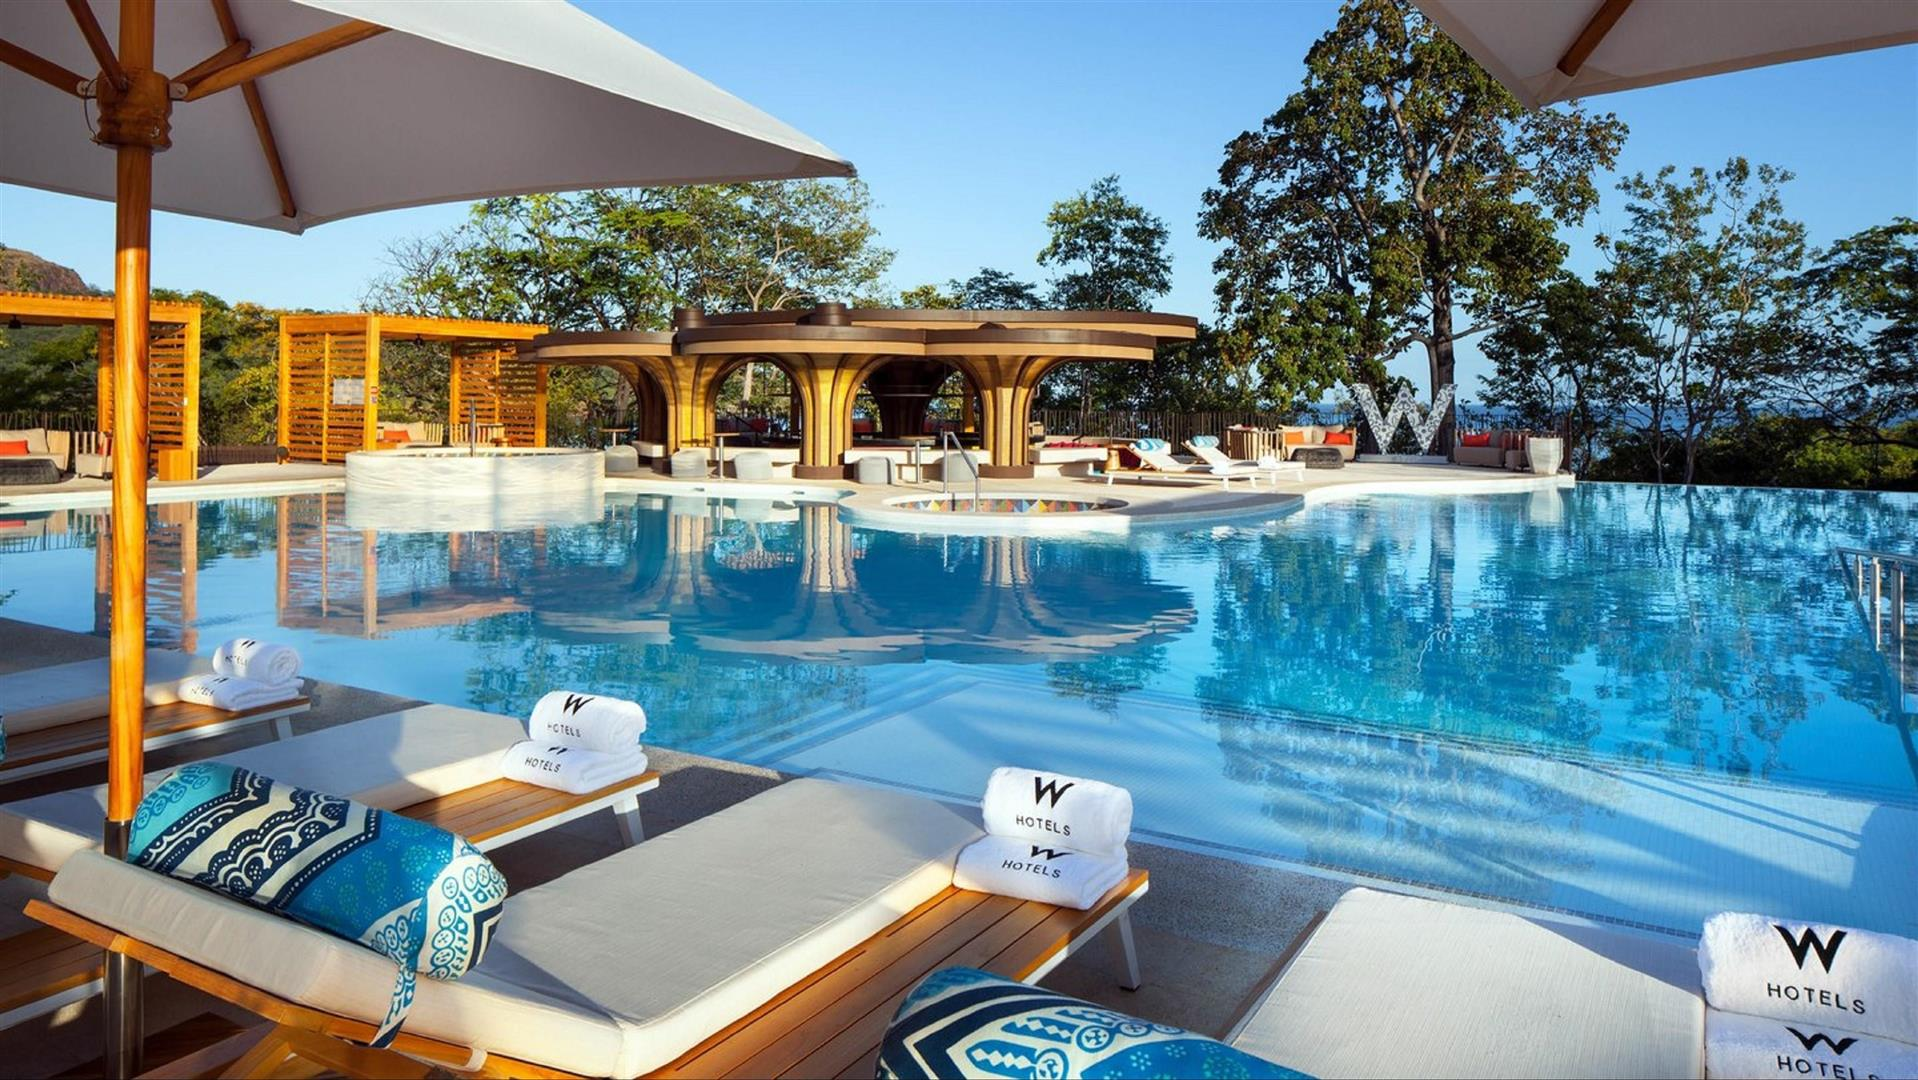 Meetings and events at JW Marriott Guanacaste Resort & Spa